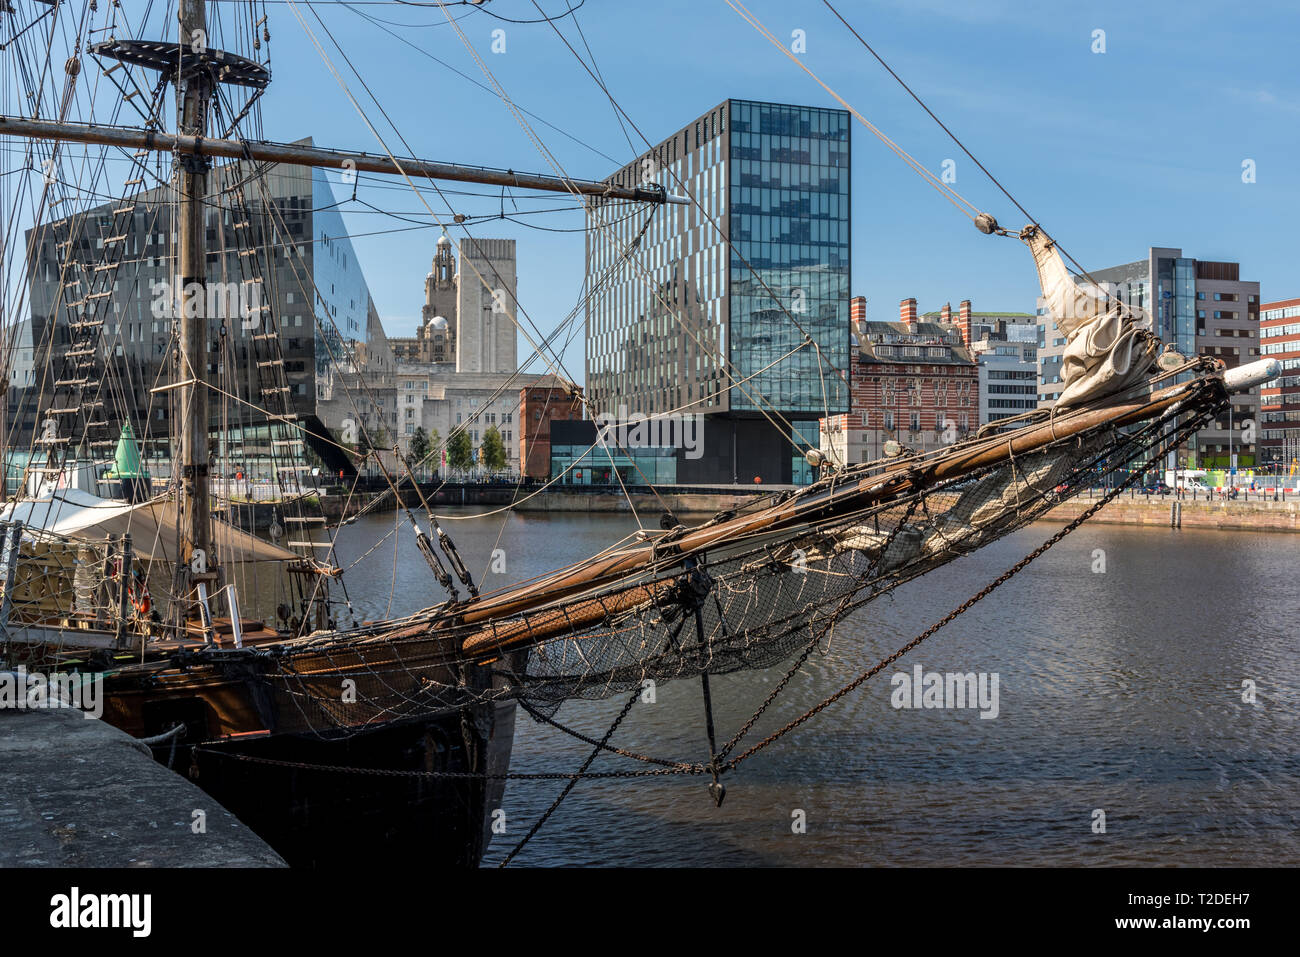 Old square rigged sailing ship moored in front of modern glass office buildings - Stock Image